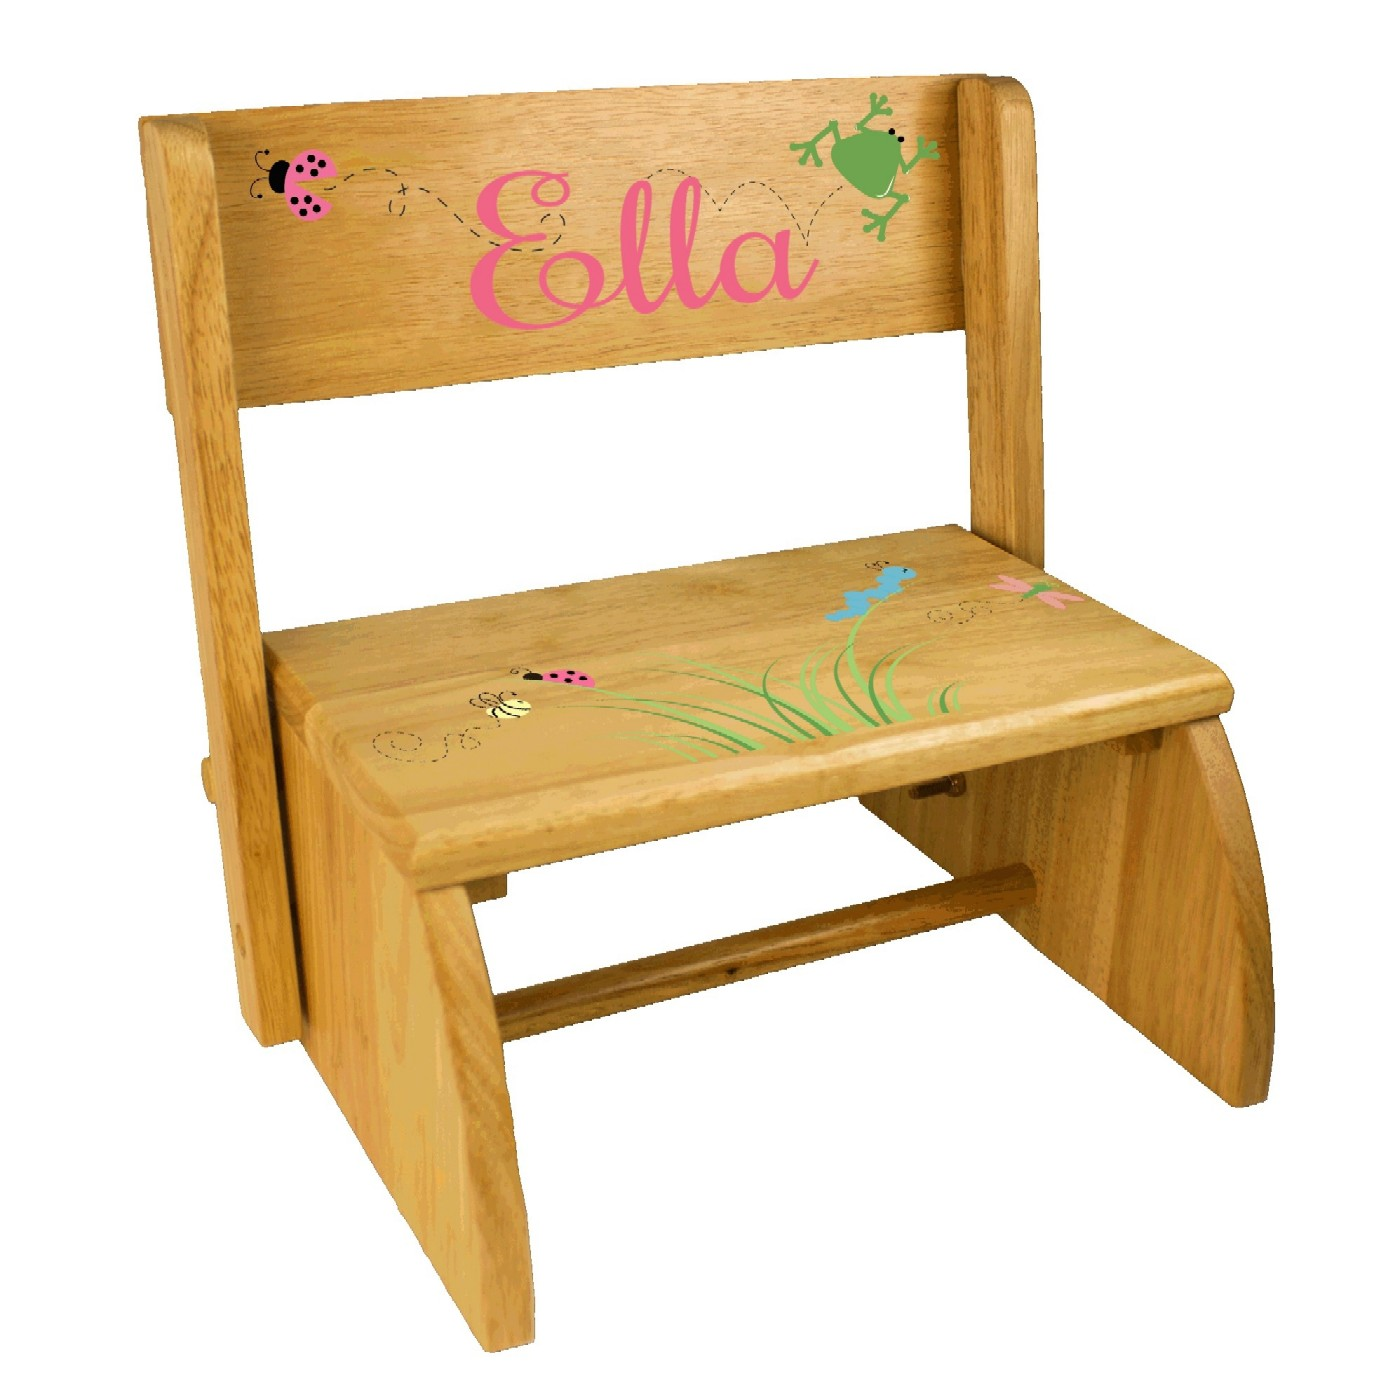 Personalized Kids Step Stools | SimplyUniqueBabyGifts.com | Free Shipping